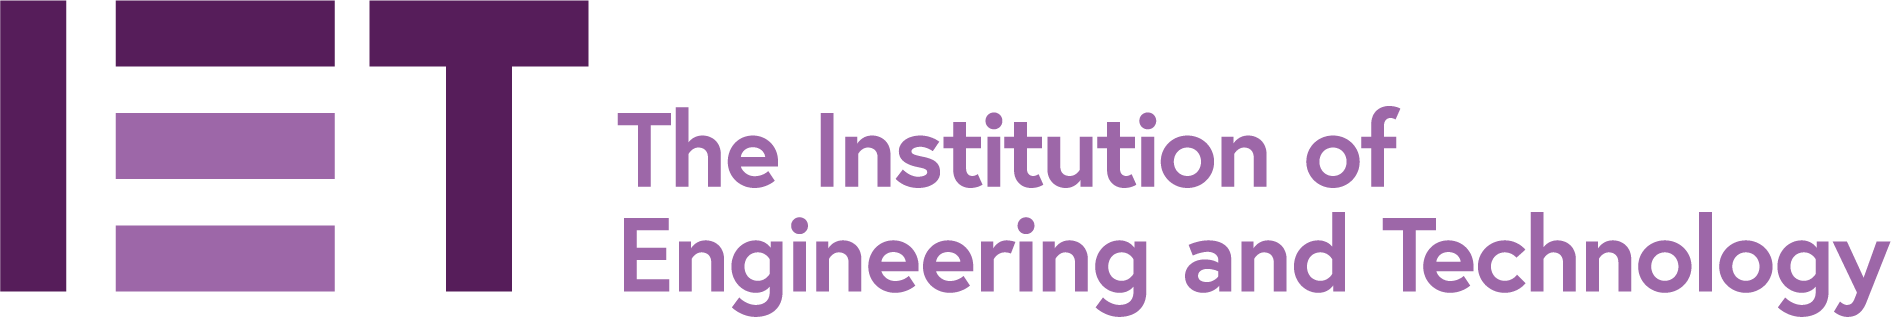 Seven Postgraduate Scholarships and Prizes from The Institution of Engineering and Technology Logo